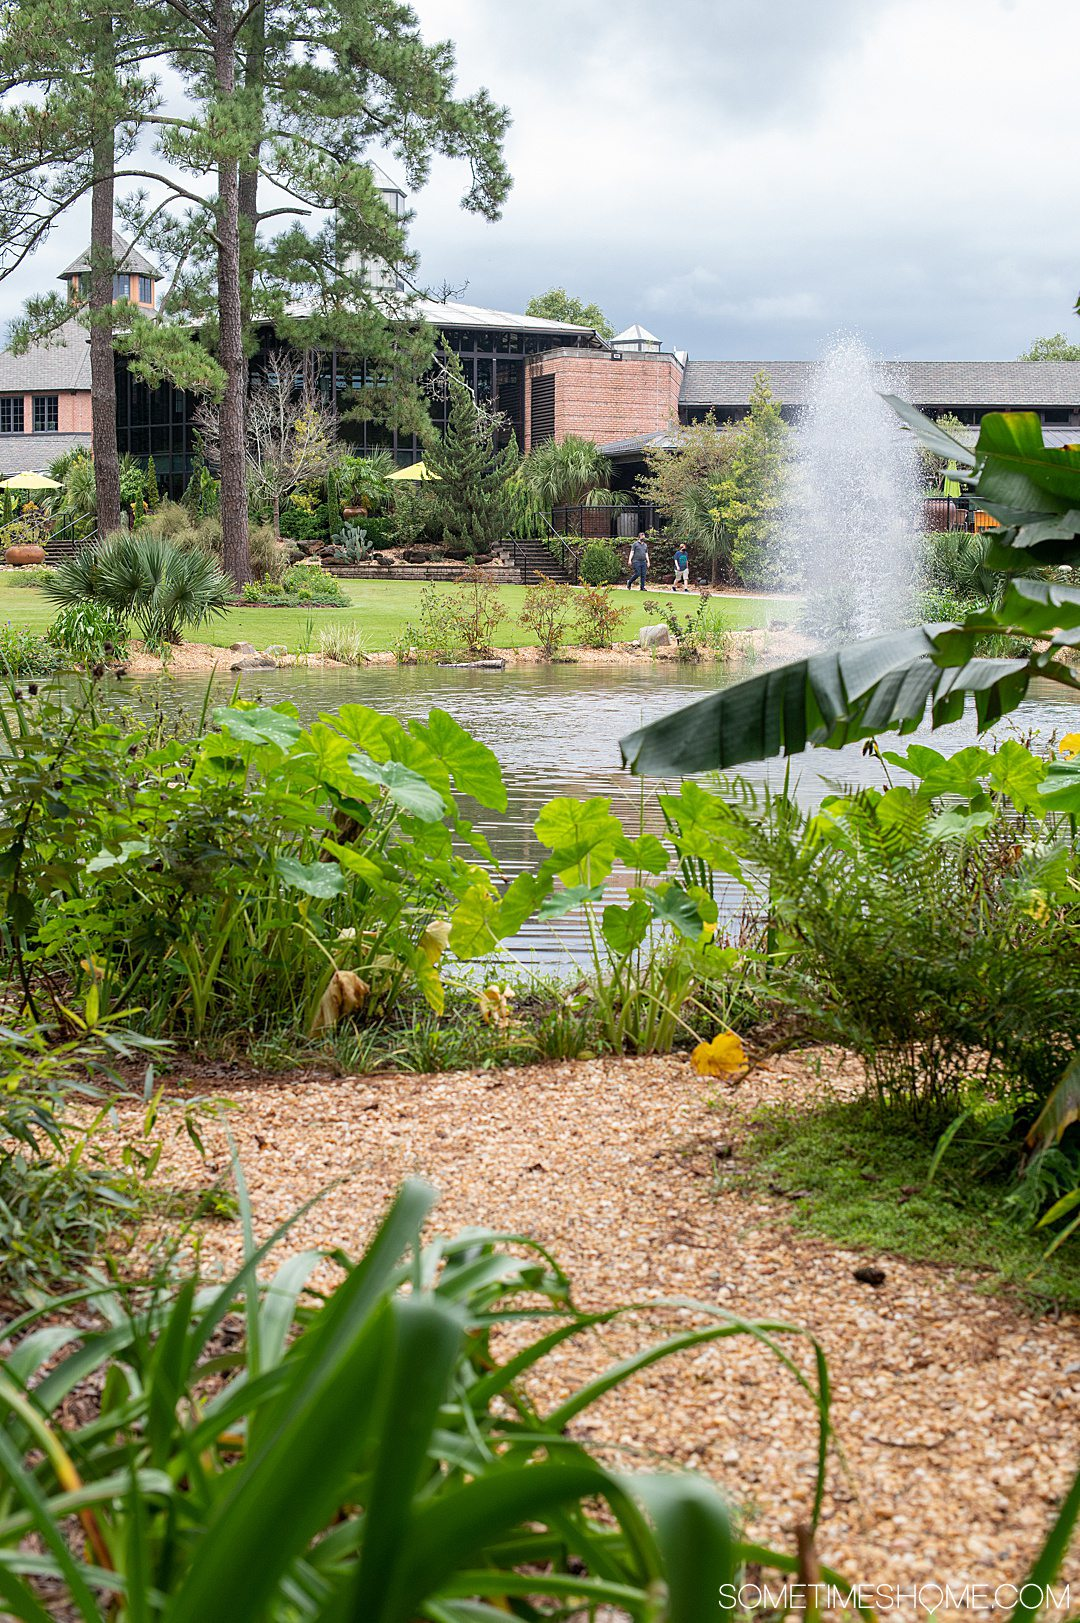 A view of tropical foliage and a lake with a water fountain in the middle at Cape Fear Botanical gardens.